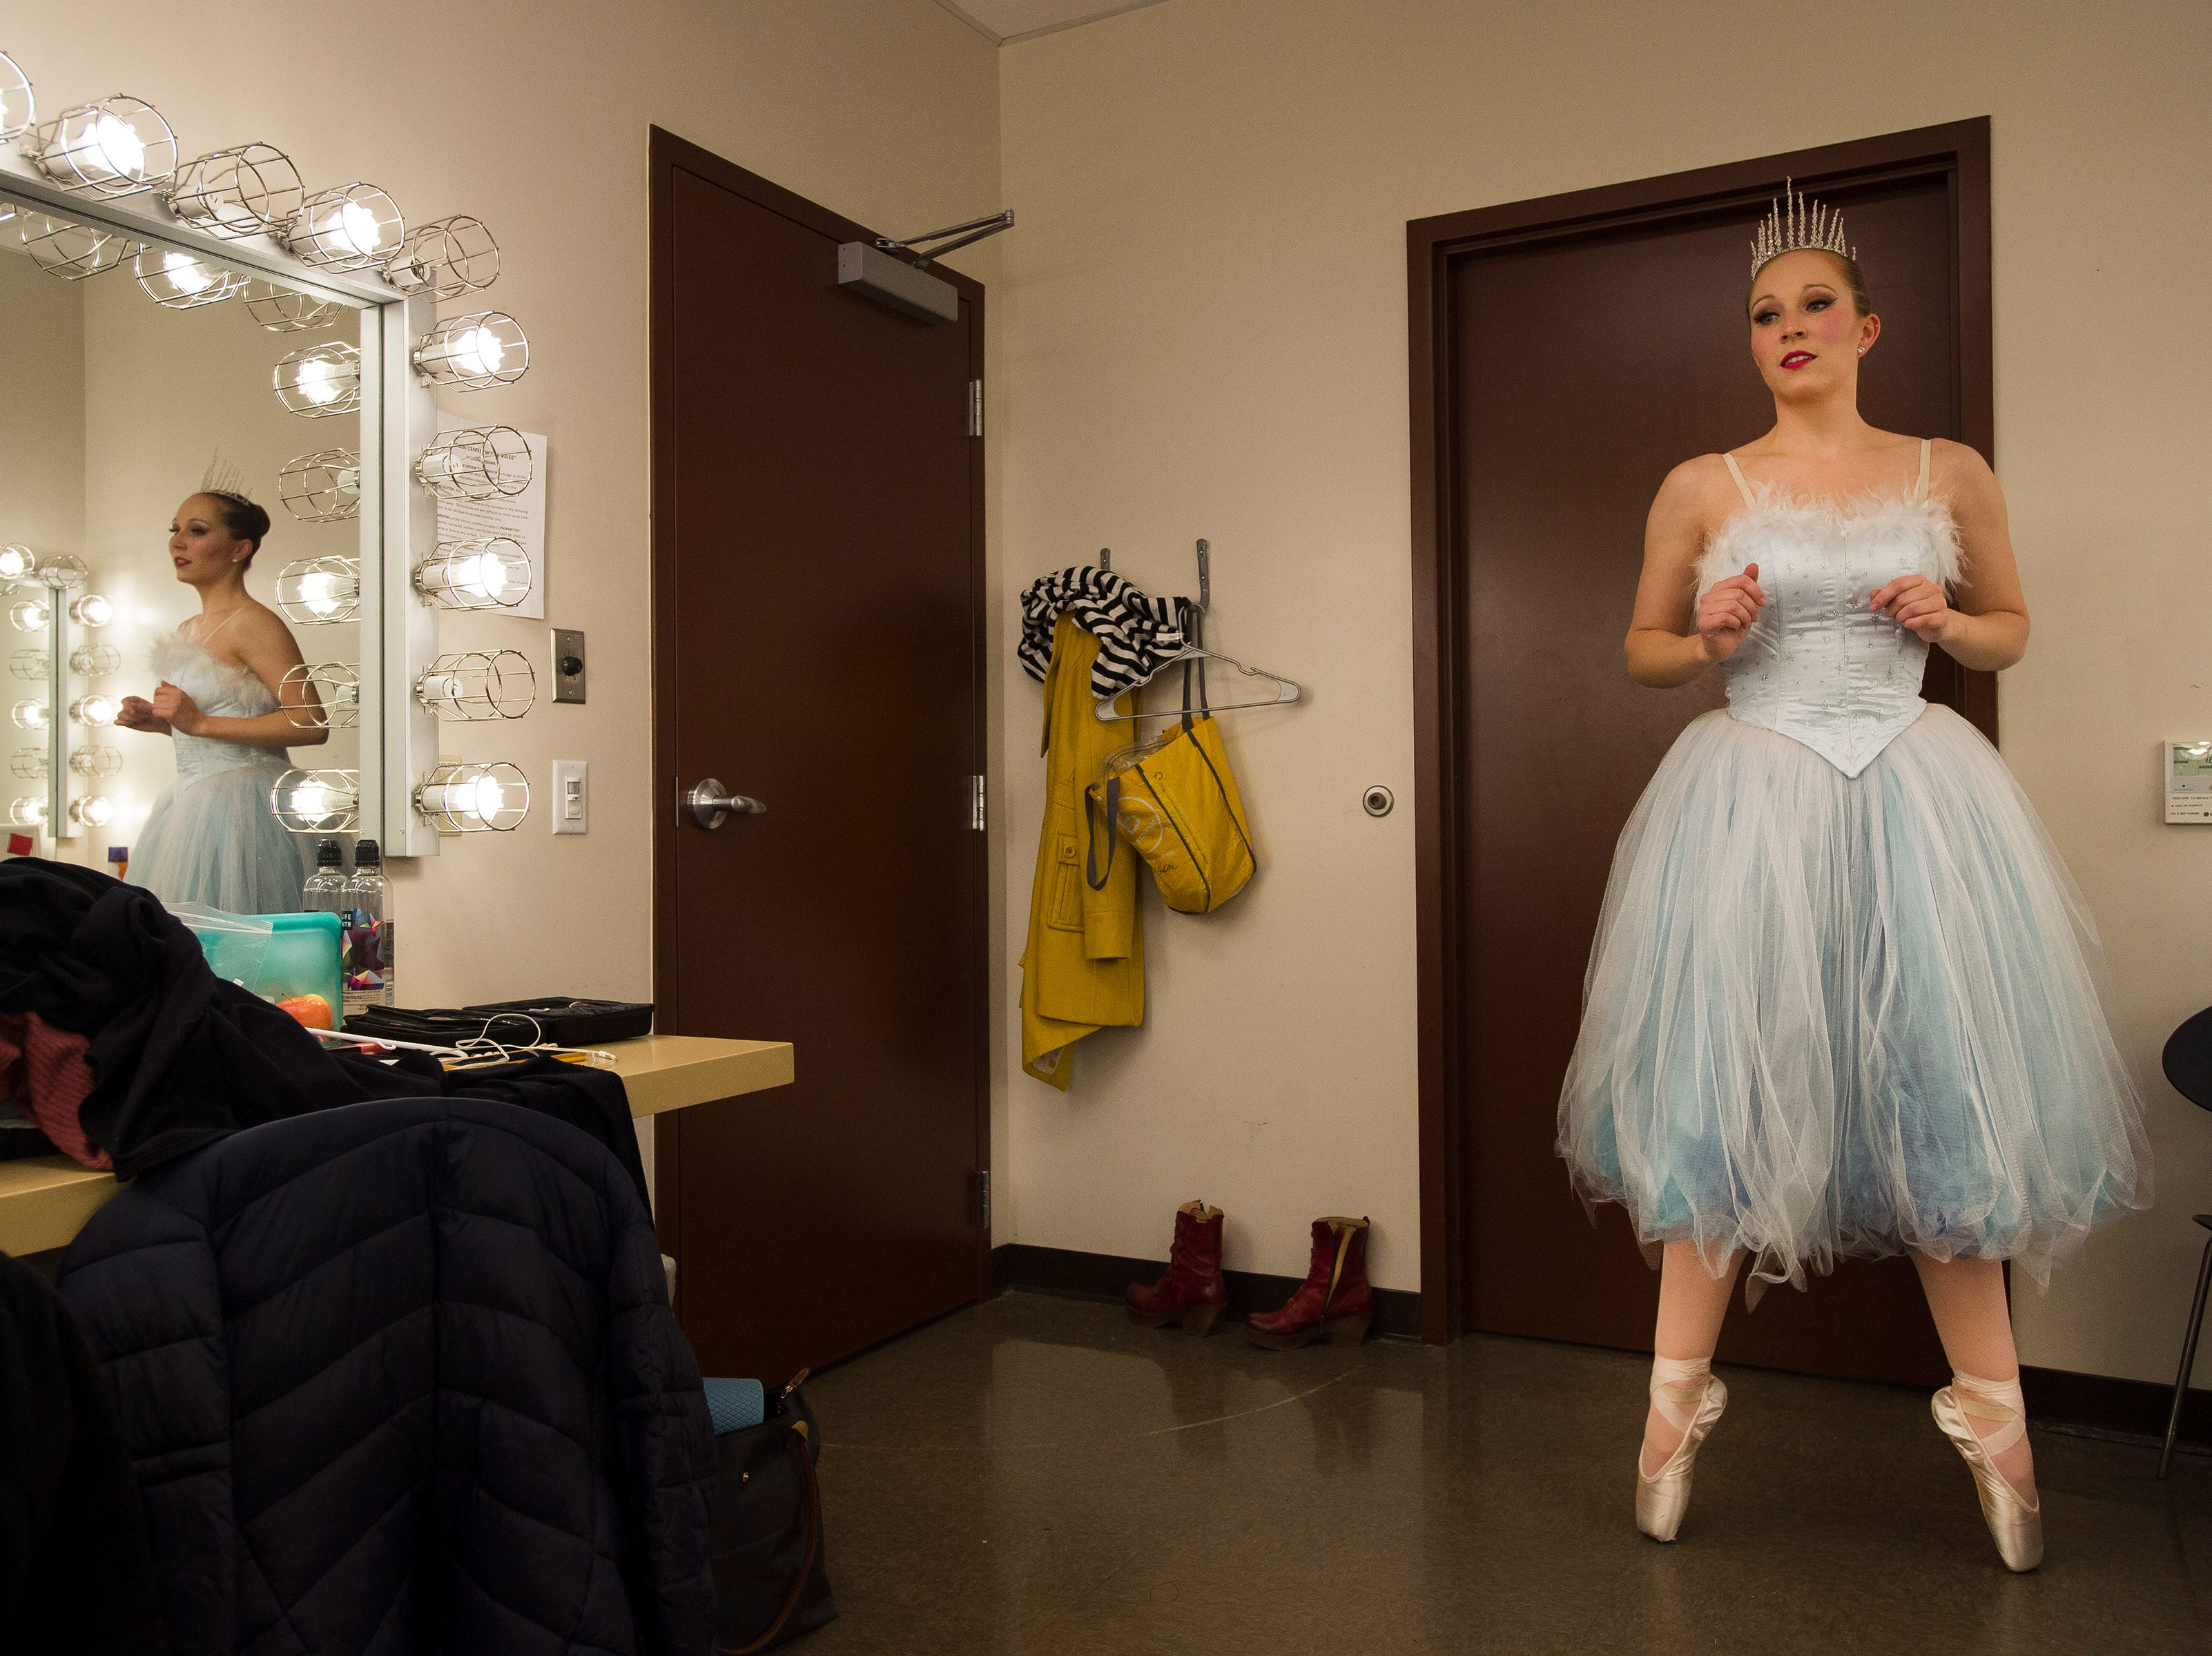 Rikke Liska limbers up in the dressing room during a rehearsal for The Nutcracker on Wednesday, Dec. 5, 2018, at the Lincoln Center in Fort Collins, Colo.